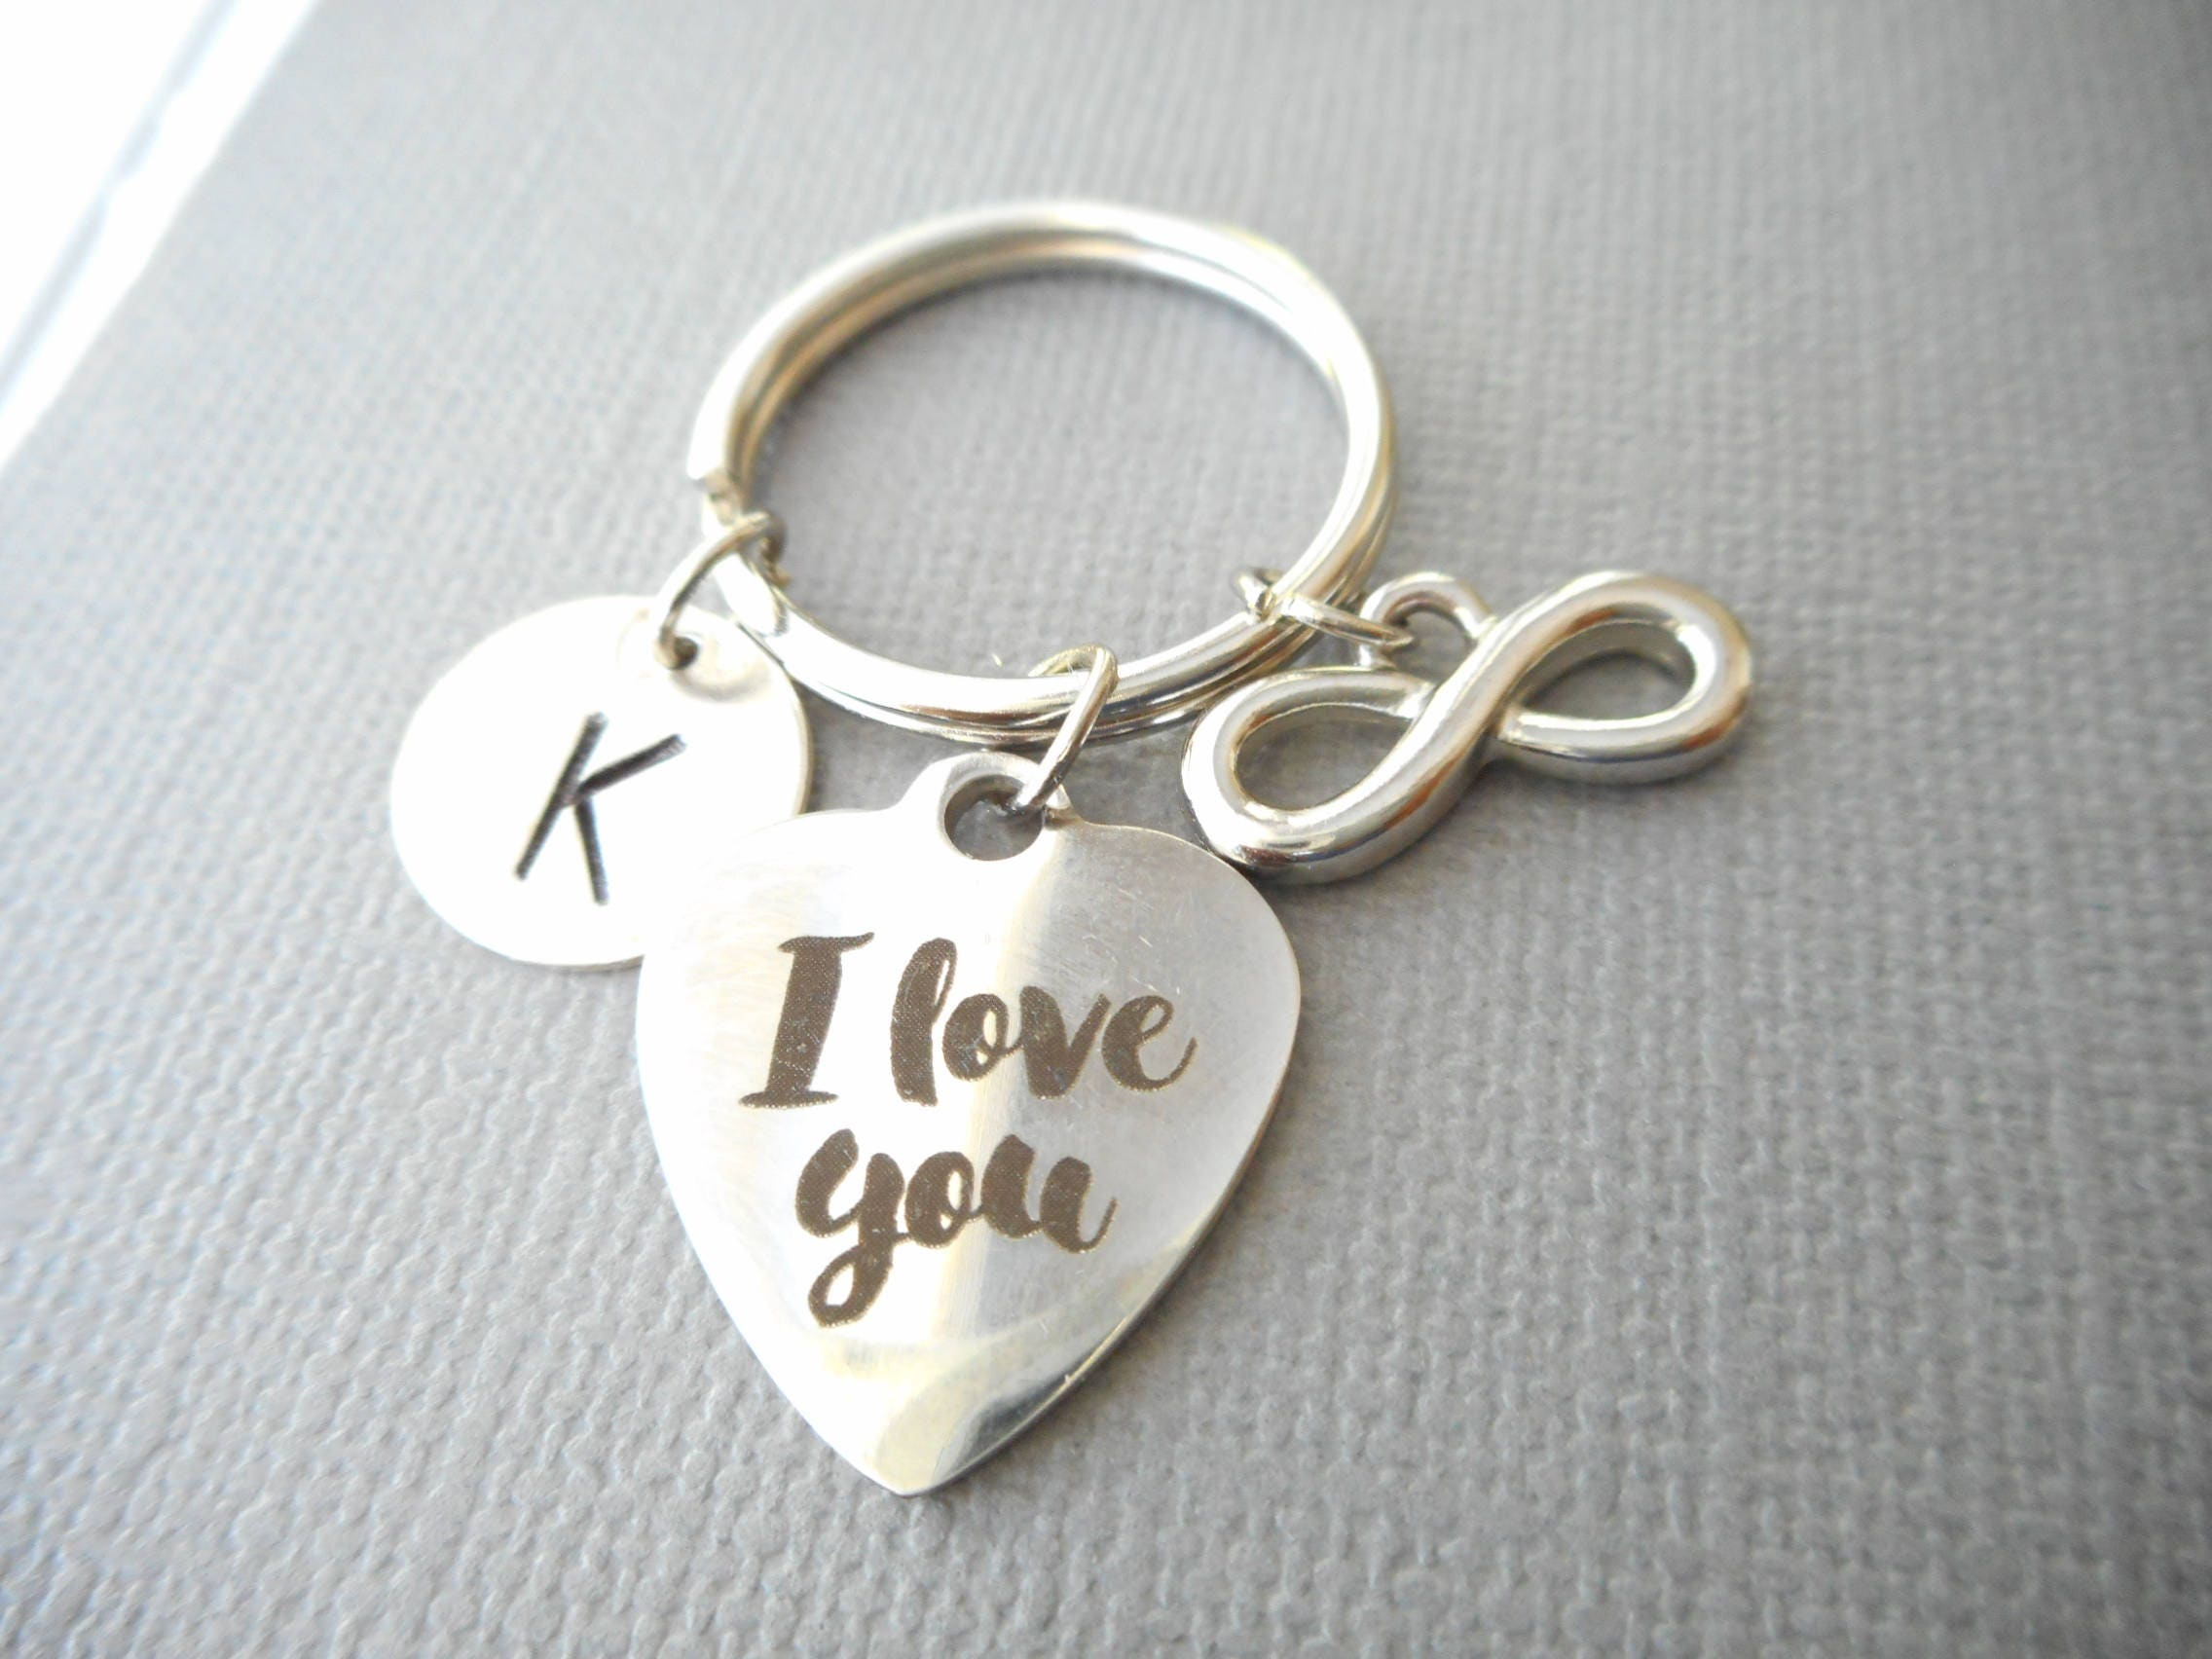 I love you infinity initial keychain gift for girlfriend i love you infinity initial keychain gift for girlfriend birthday gift girlfriend negle Choice Image